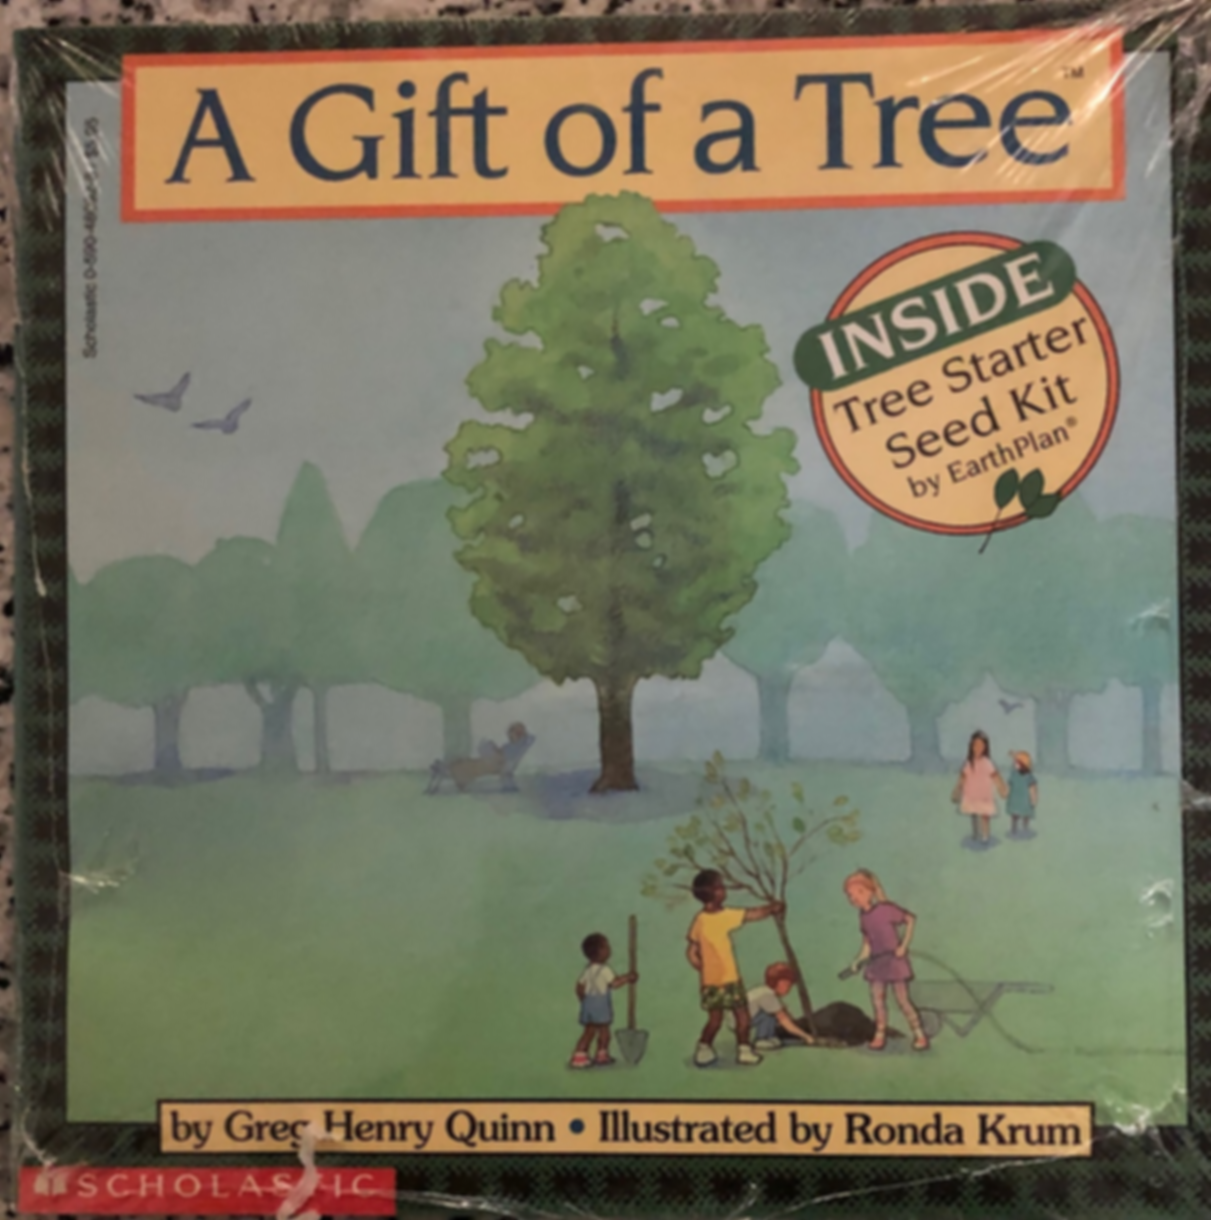 Tree kit scholastic book.png